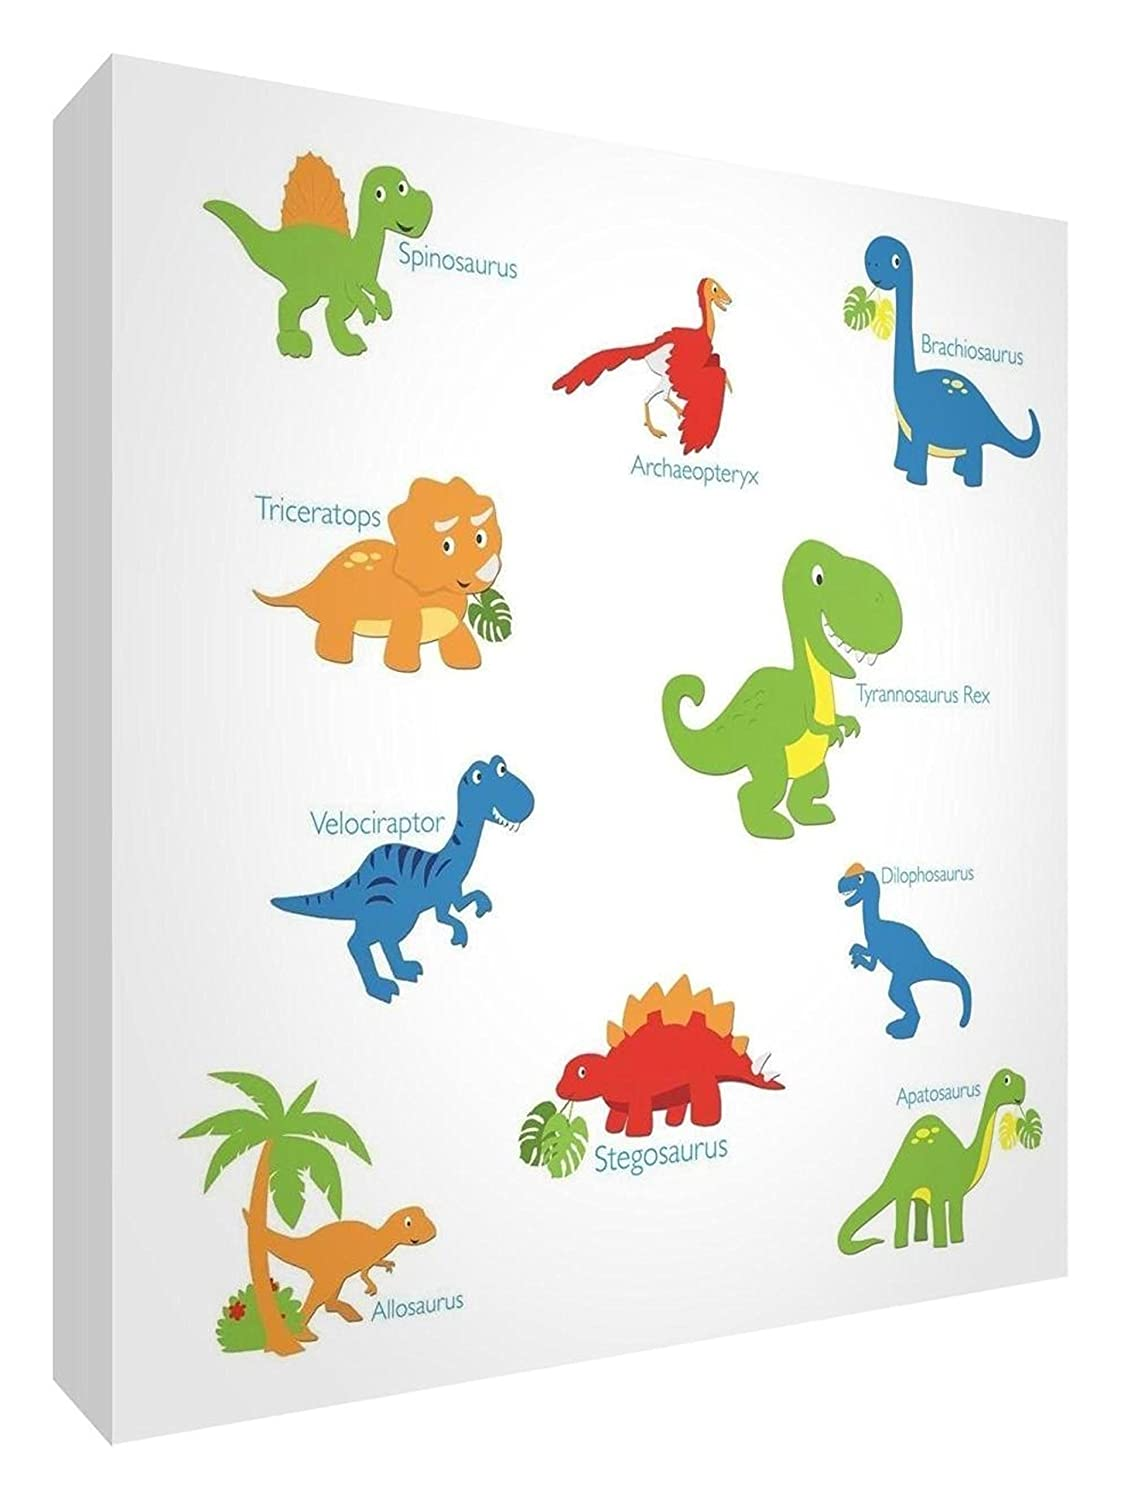 Feel Good Art Premium Giclée Dinosaurs Design Printed Canvas with Solid Backing, 25 x 25 x 3 cm Little Helper Ltd DINOSAURS1010-15